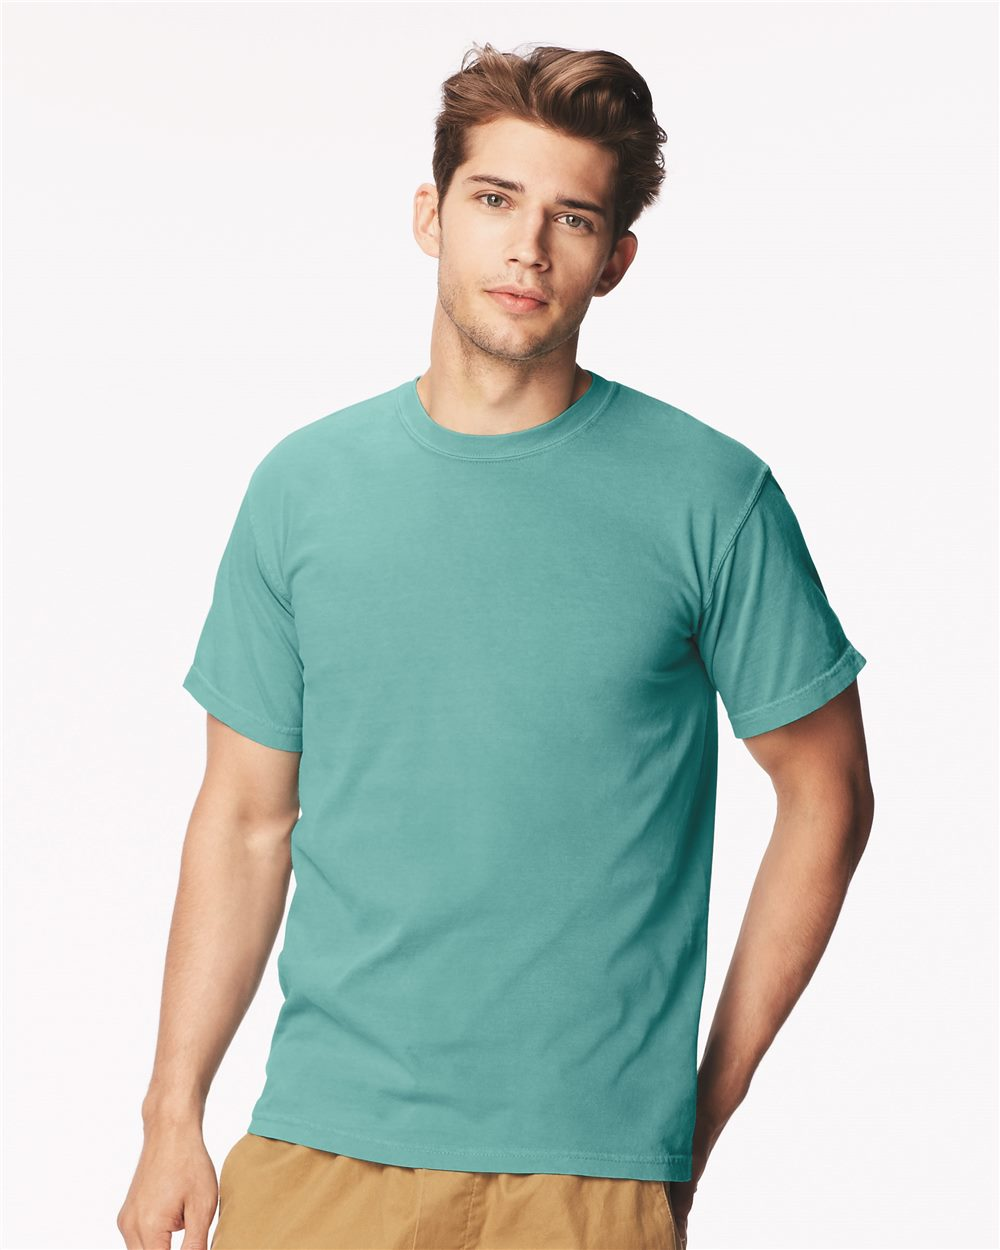 Comfort Colors Ringspun Garment Dyed T Shirt